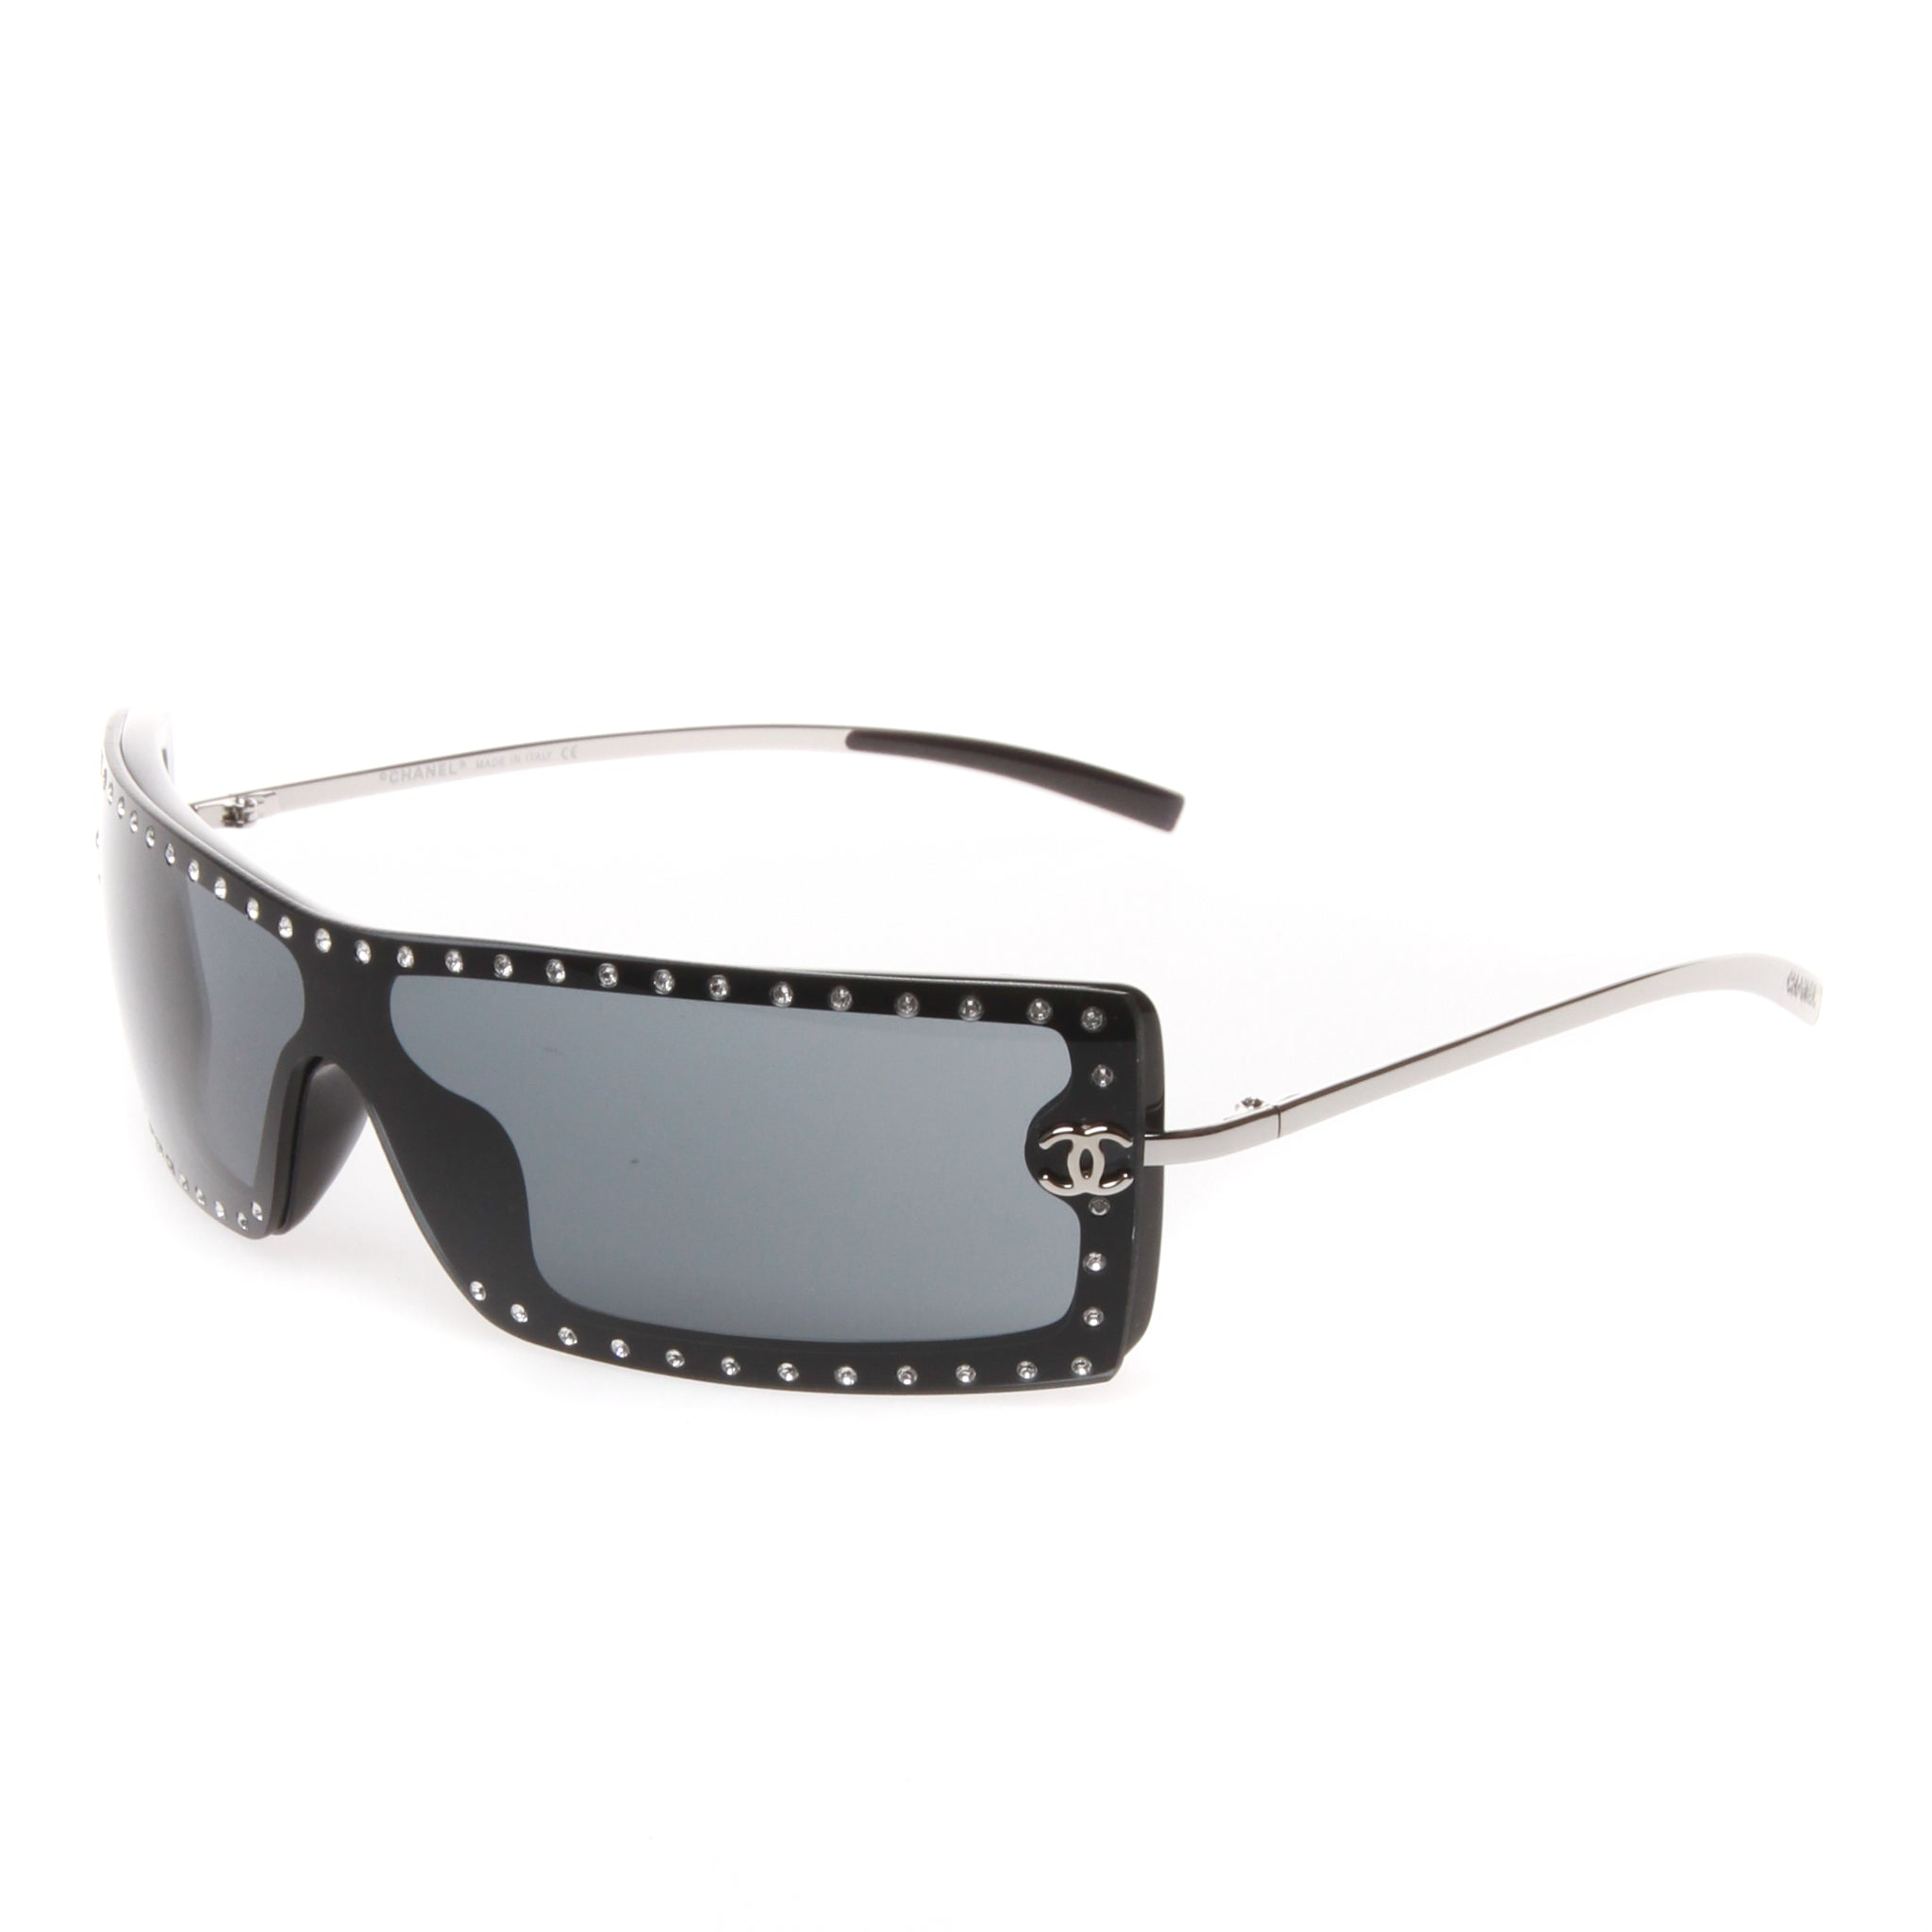 89cd4e5bb39 Pre-owned Rimless Chanel Sunglasses Encrusted with Swarovski Crystals